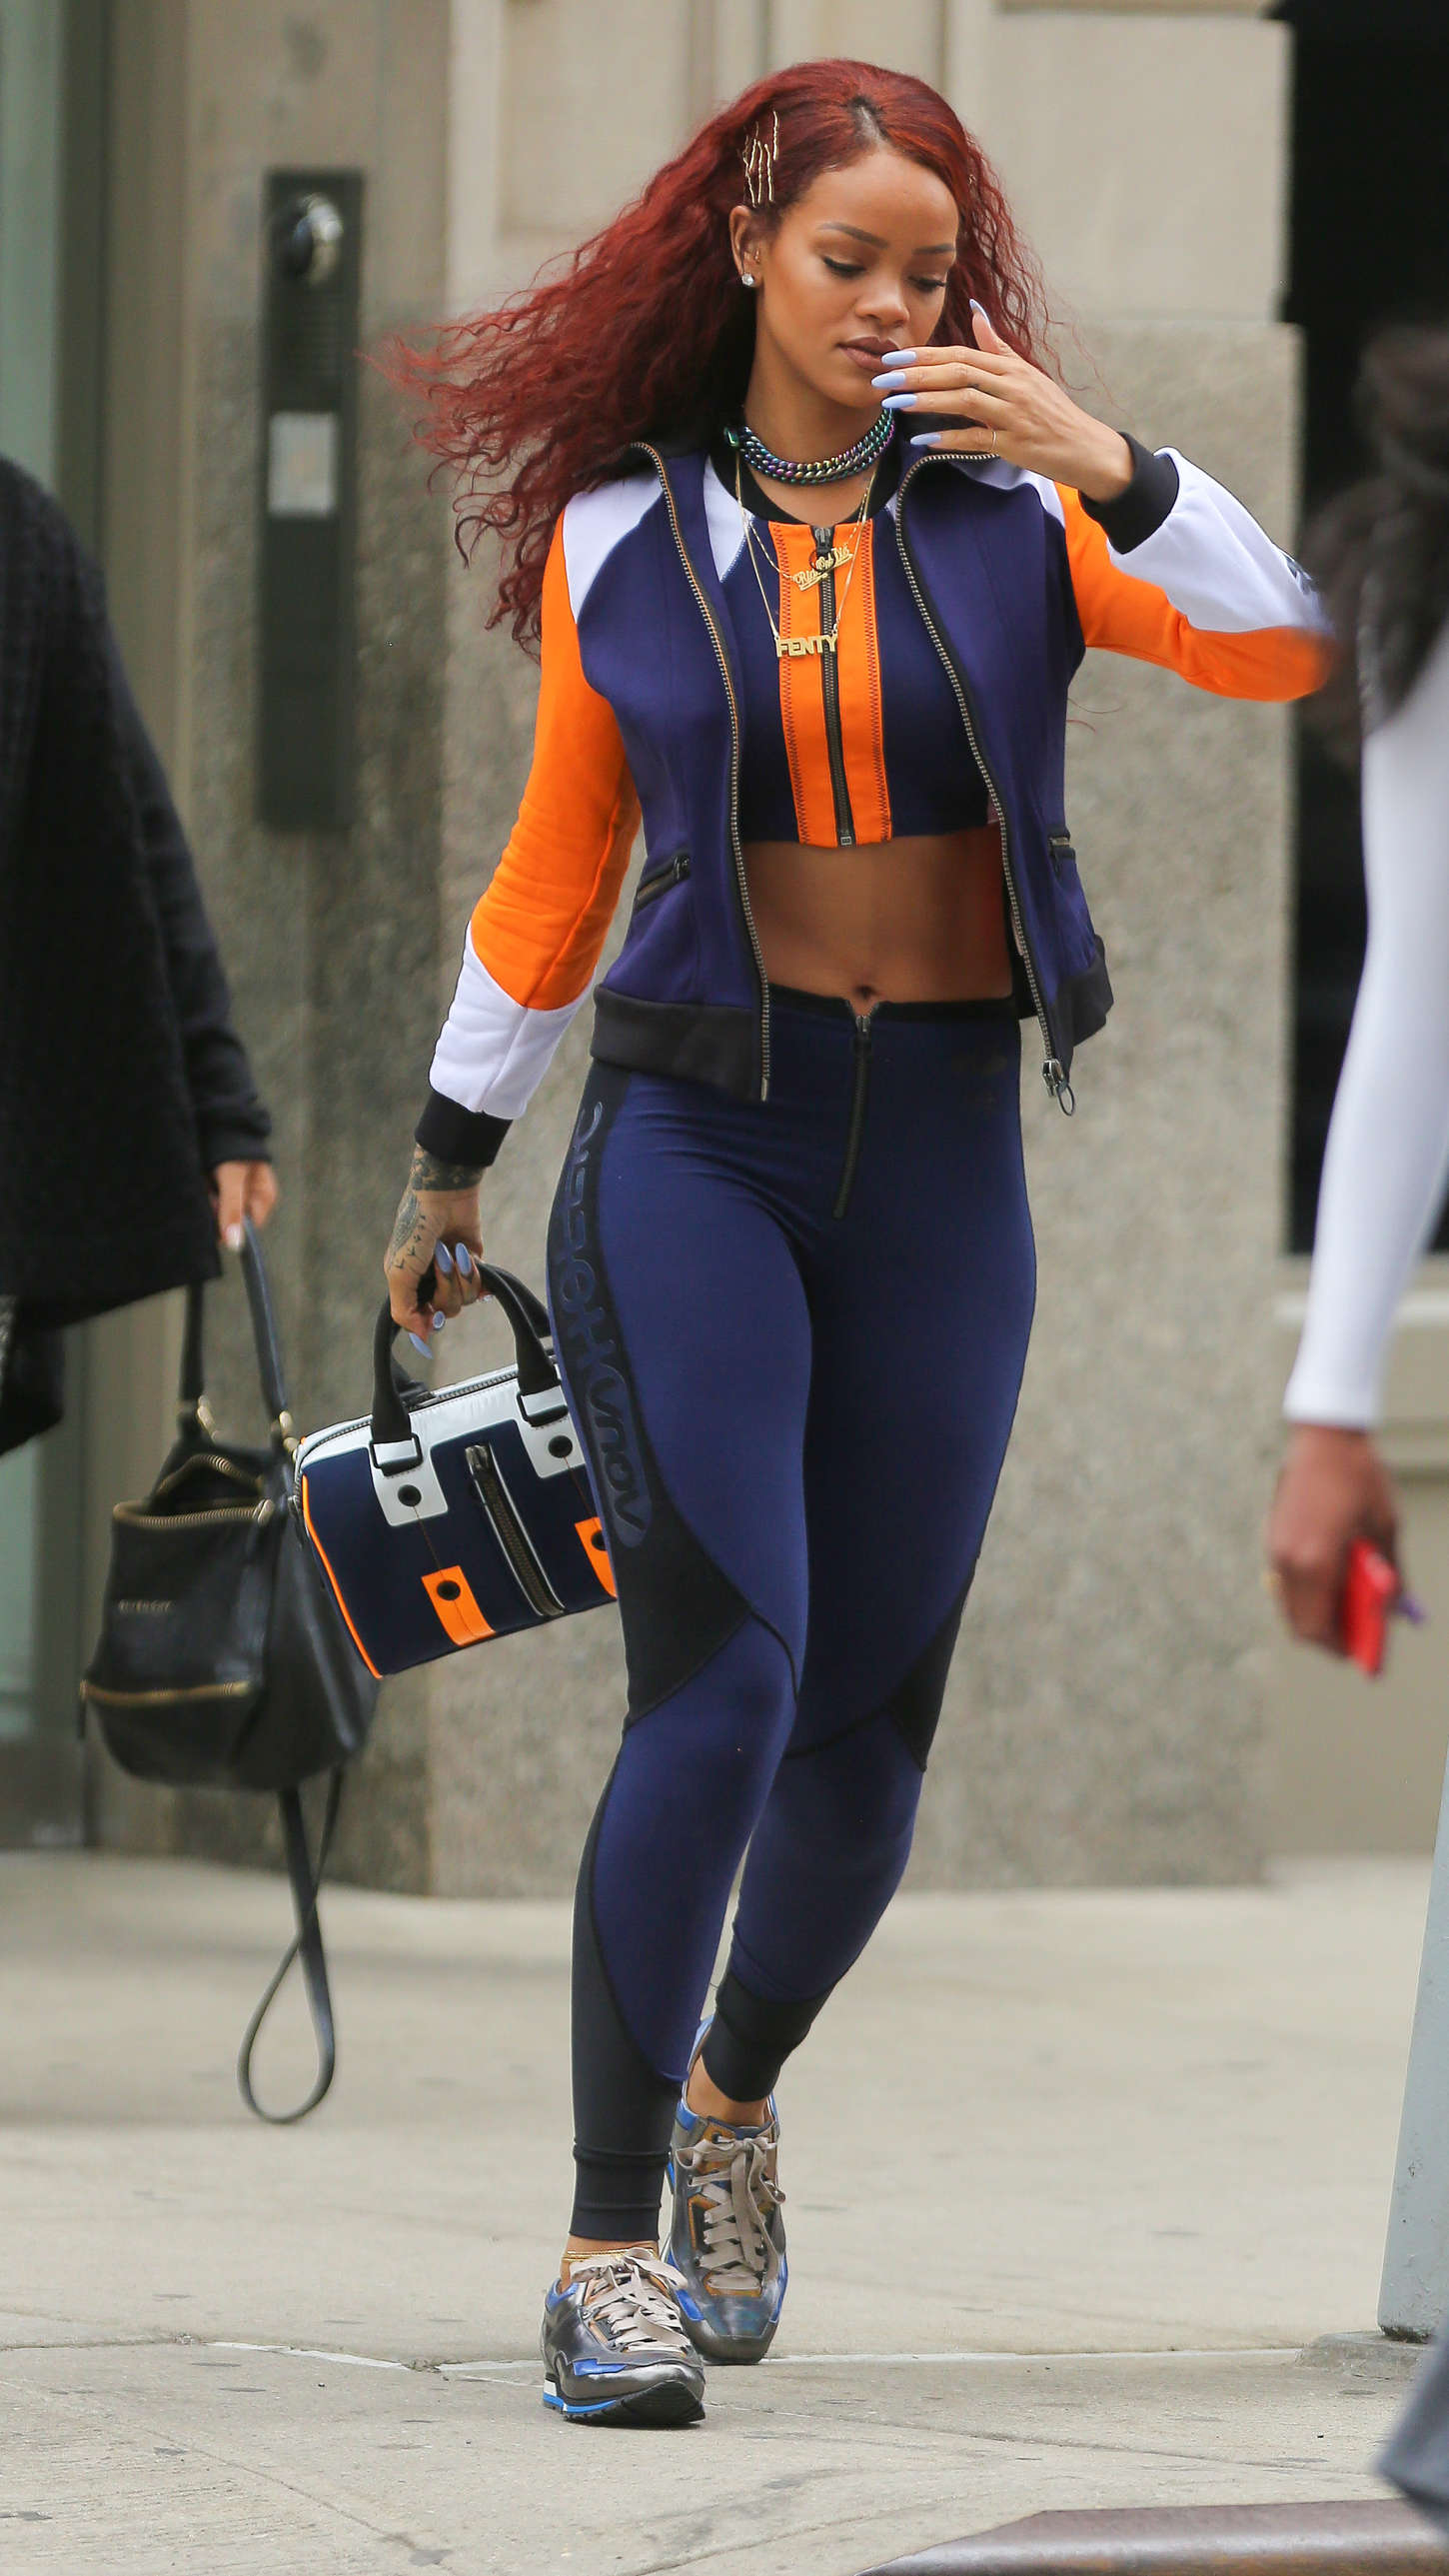 Thick orange candid - 5 1